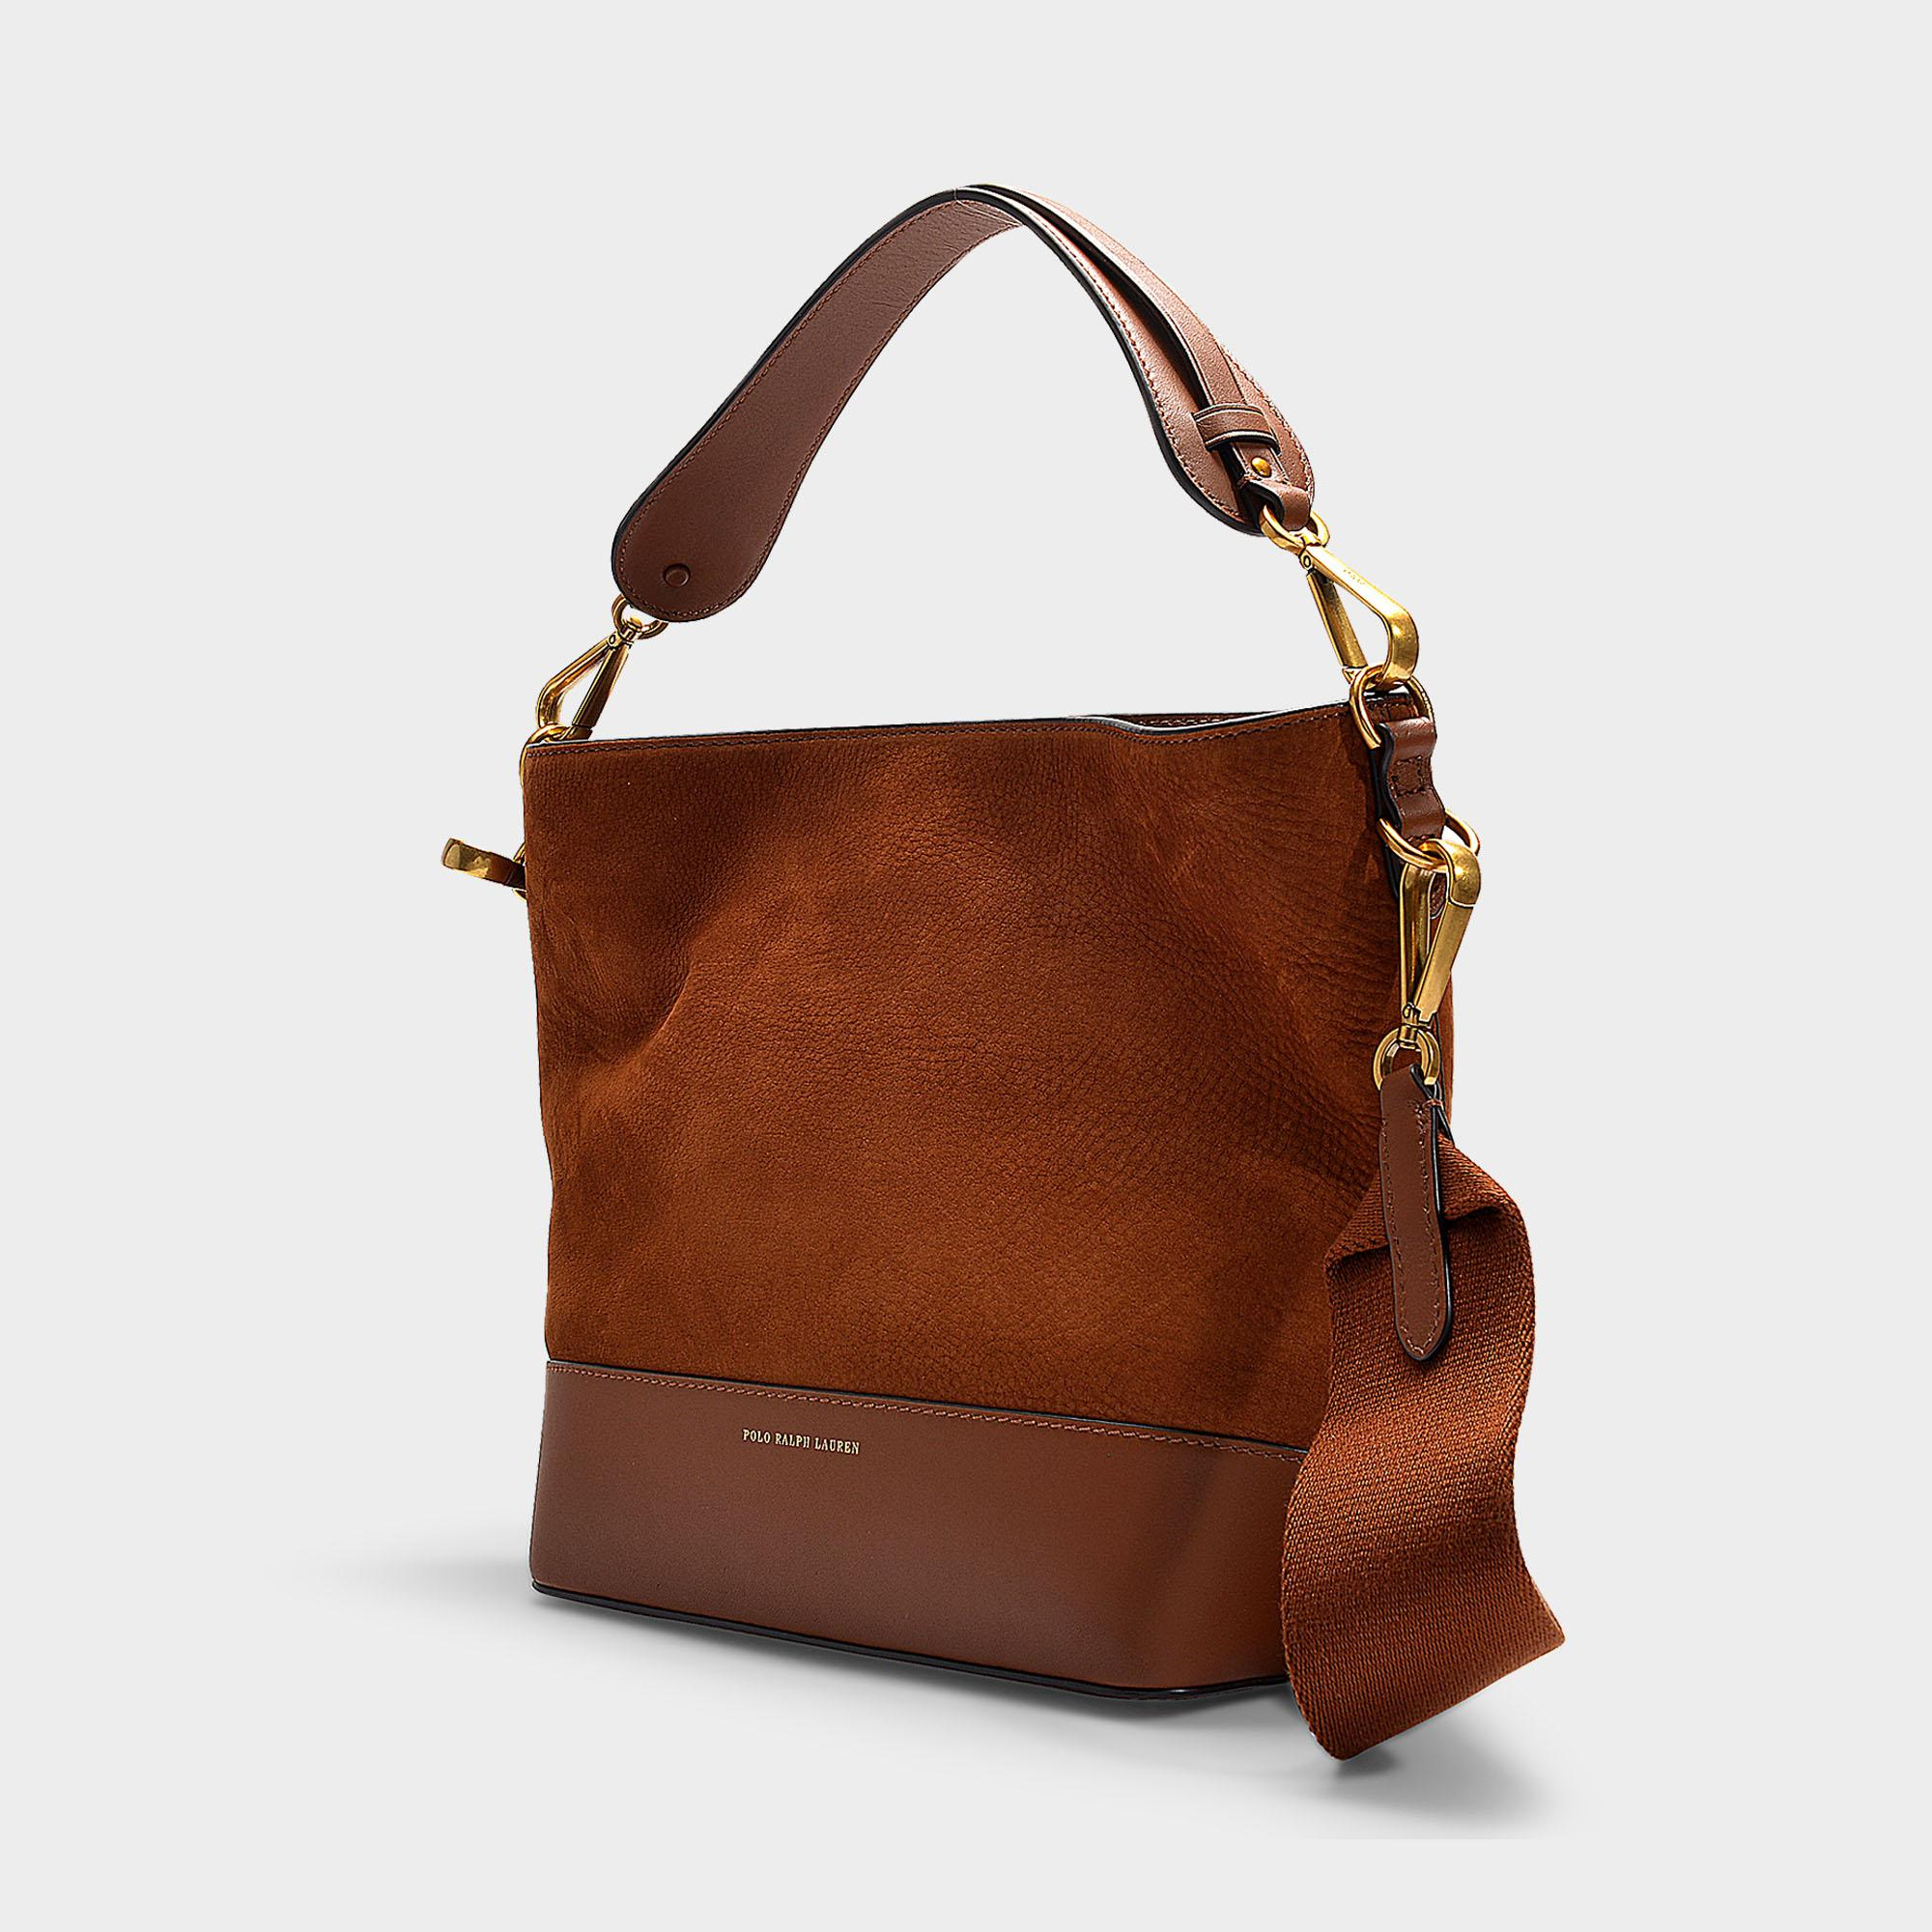 d9d665089d Polo Ralph Lauren - Brown Sullivan Bucket Hobo Small Bag In Saddle Nubuck  And Nappa Leather. View fullscreen